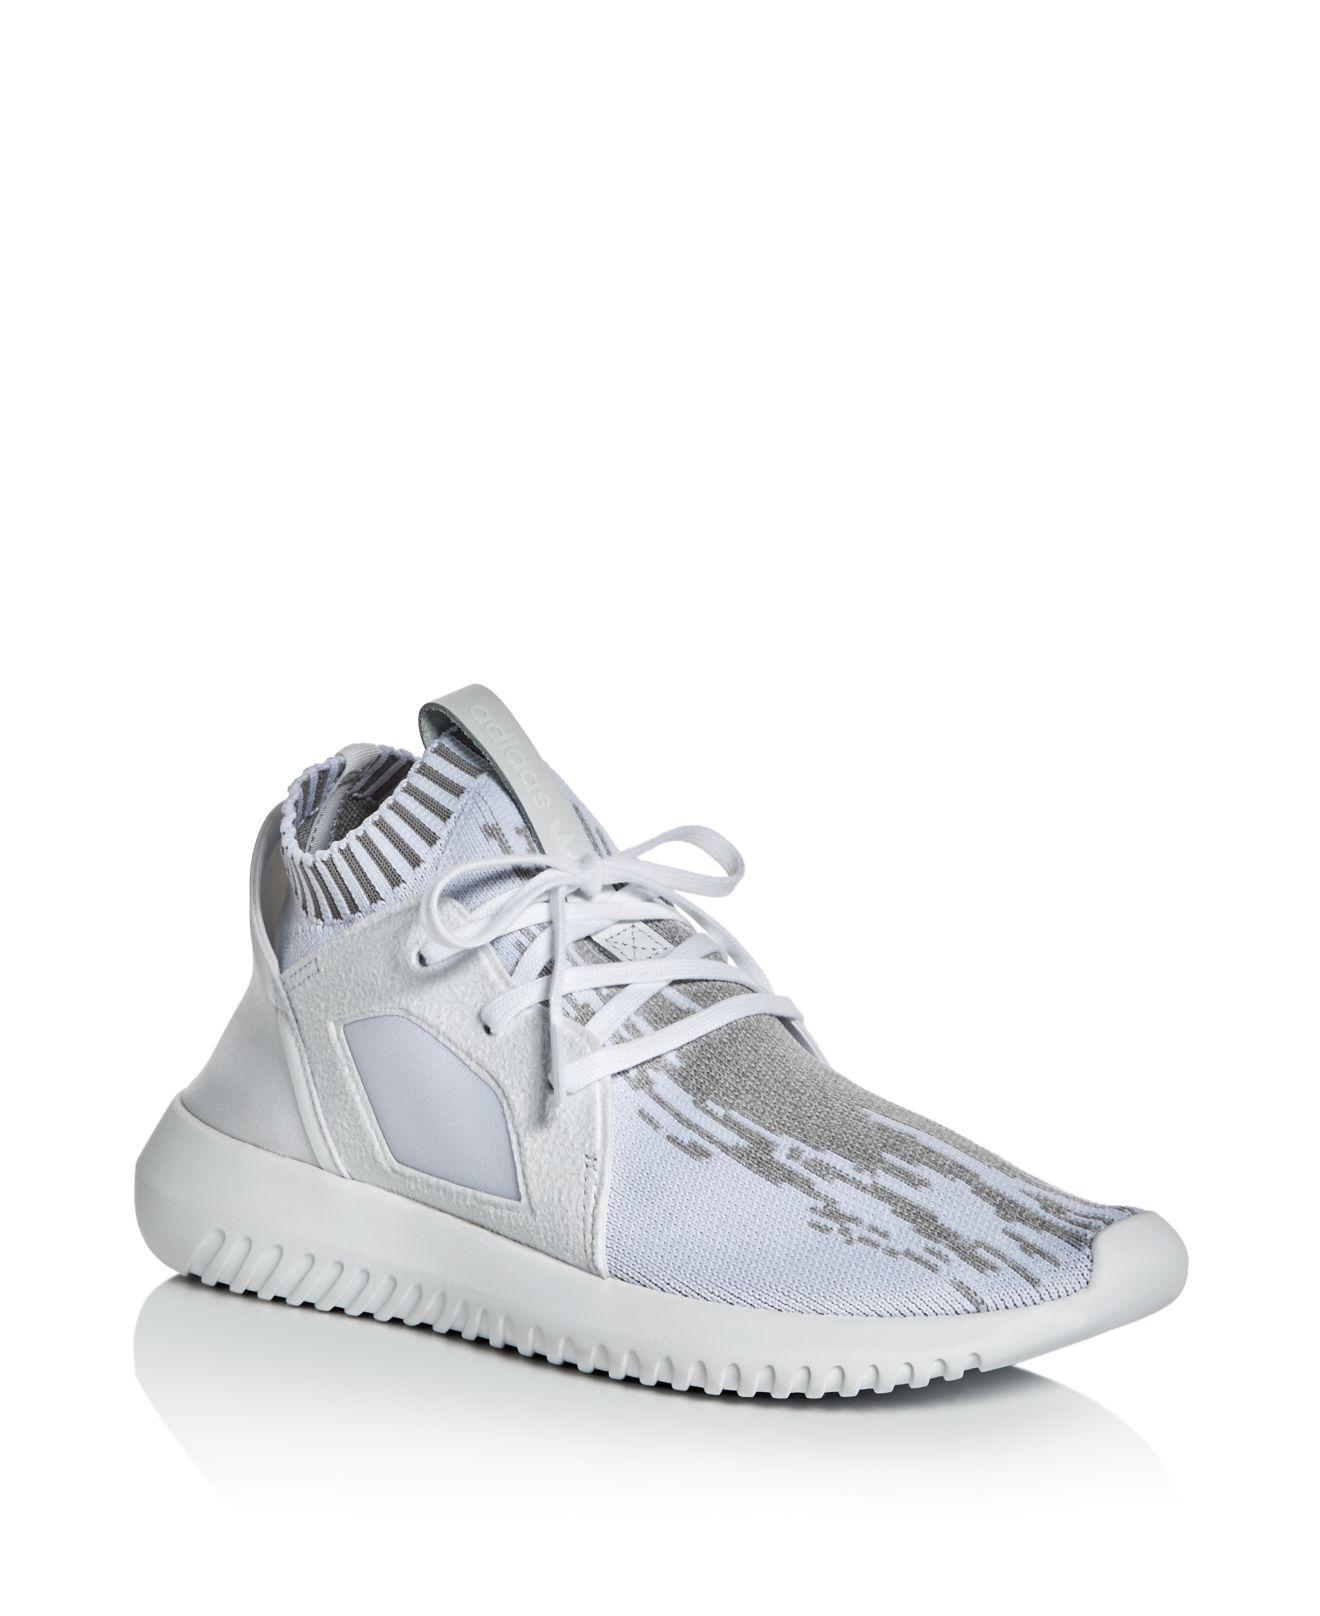 cheap for discount a4b8d 7ef74 Lyst - adidas Originals Women s Tubular Defiant Primeknit Lace Up ...